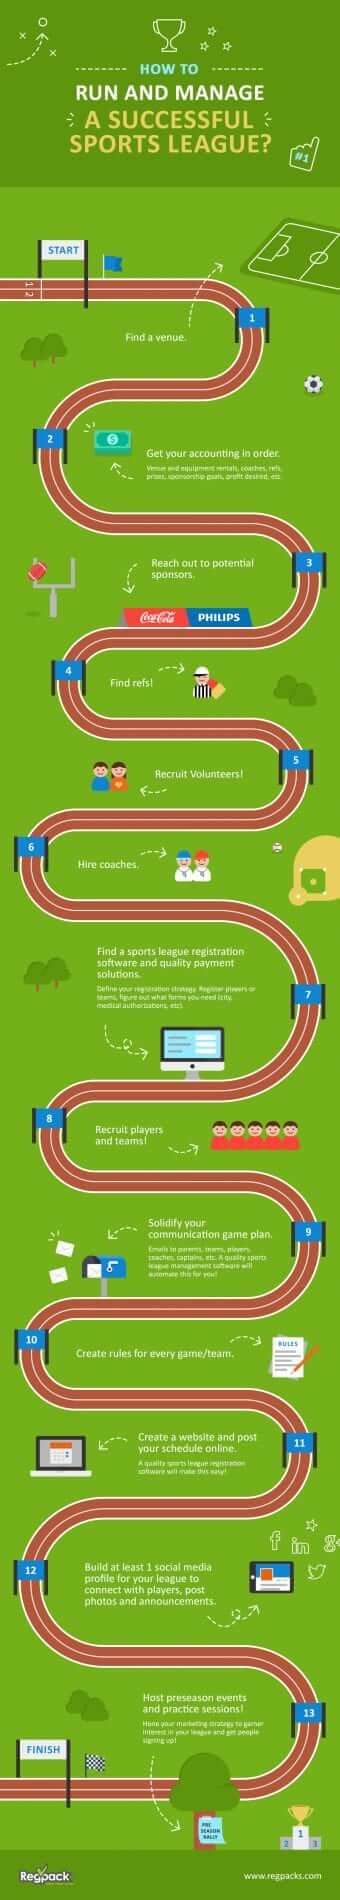 How to Run  Manage a Successful Sports League Infographic